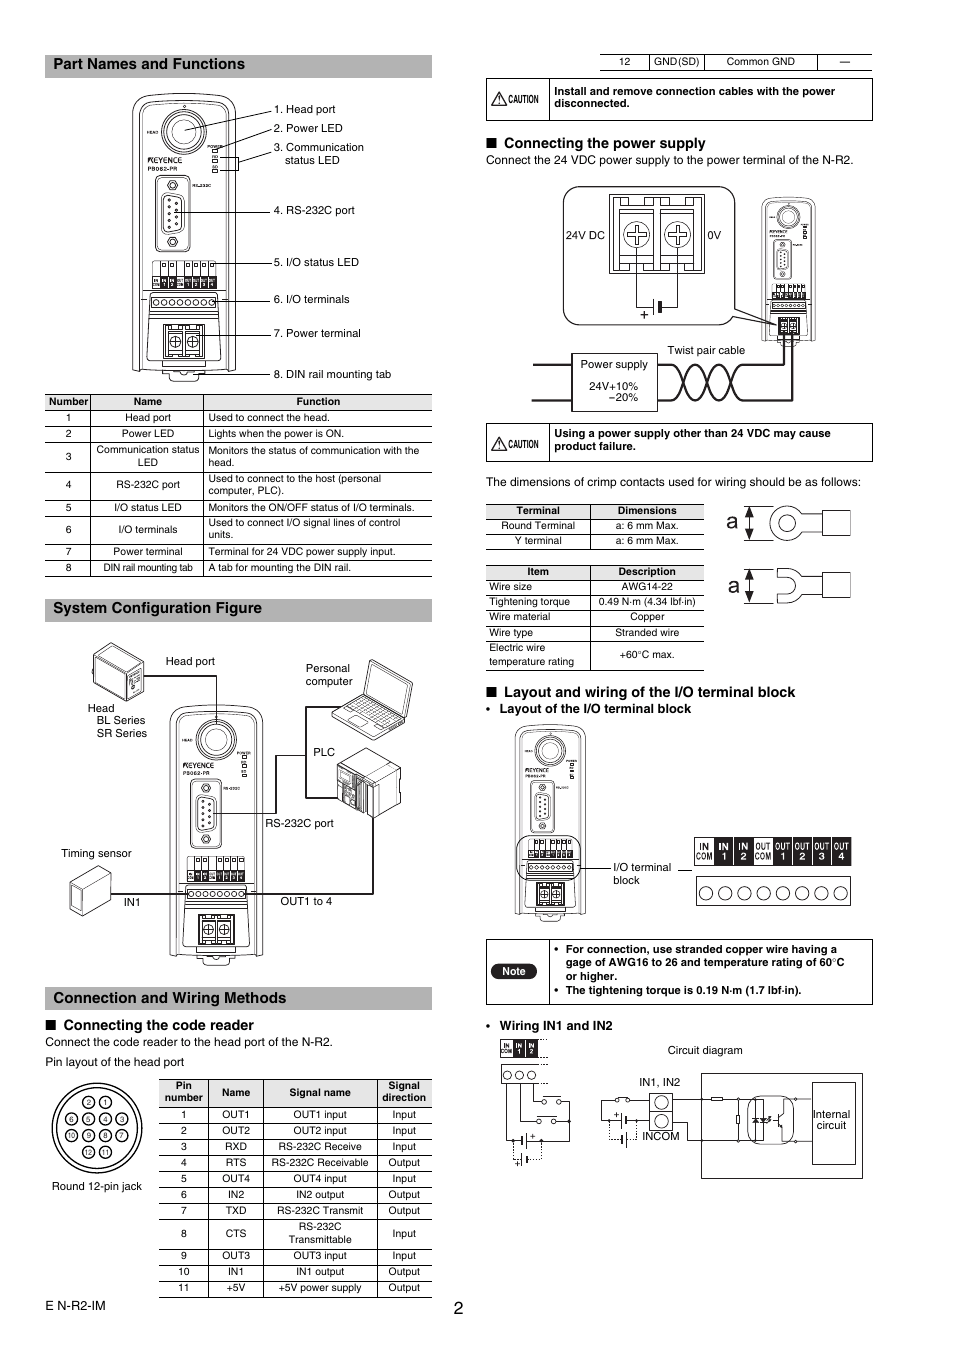 Part names and functions, System configuration figure